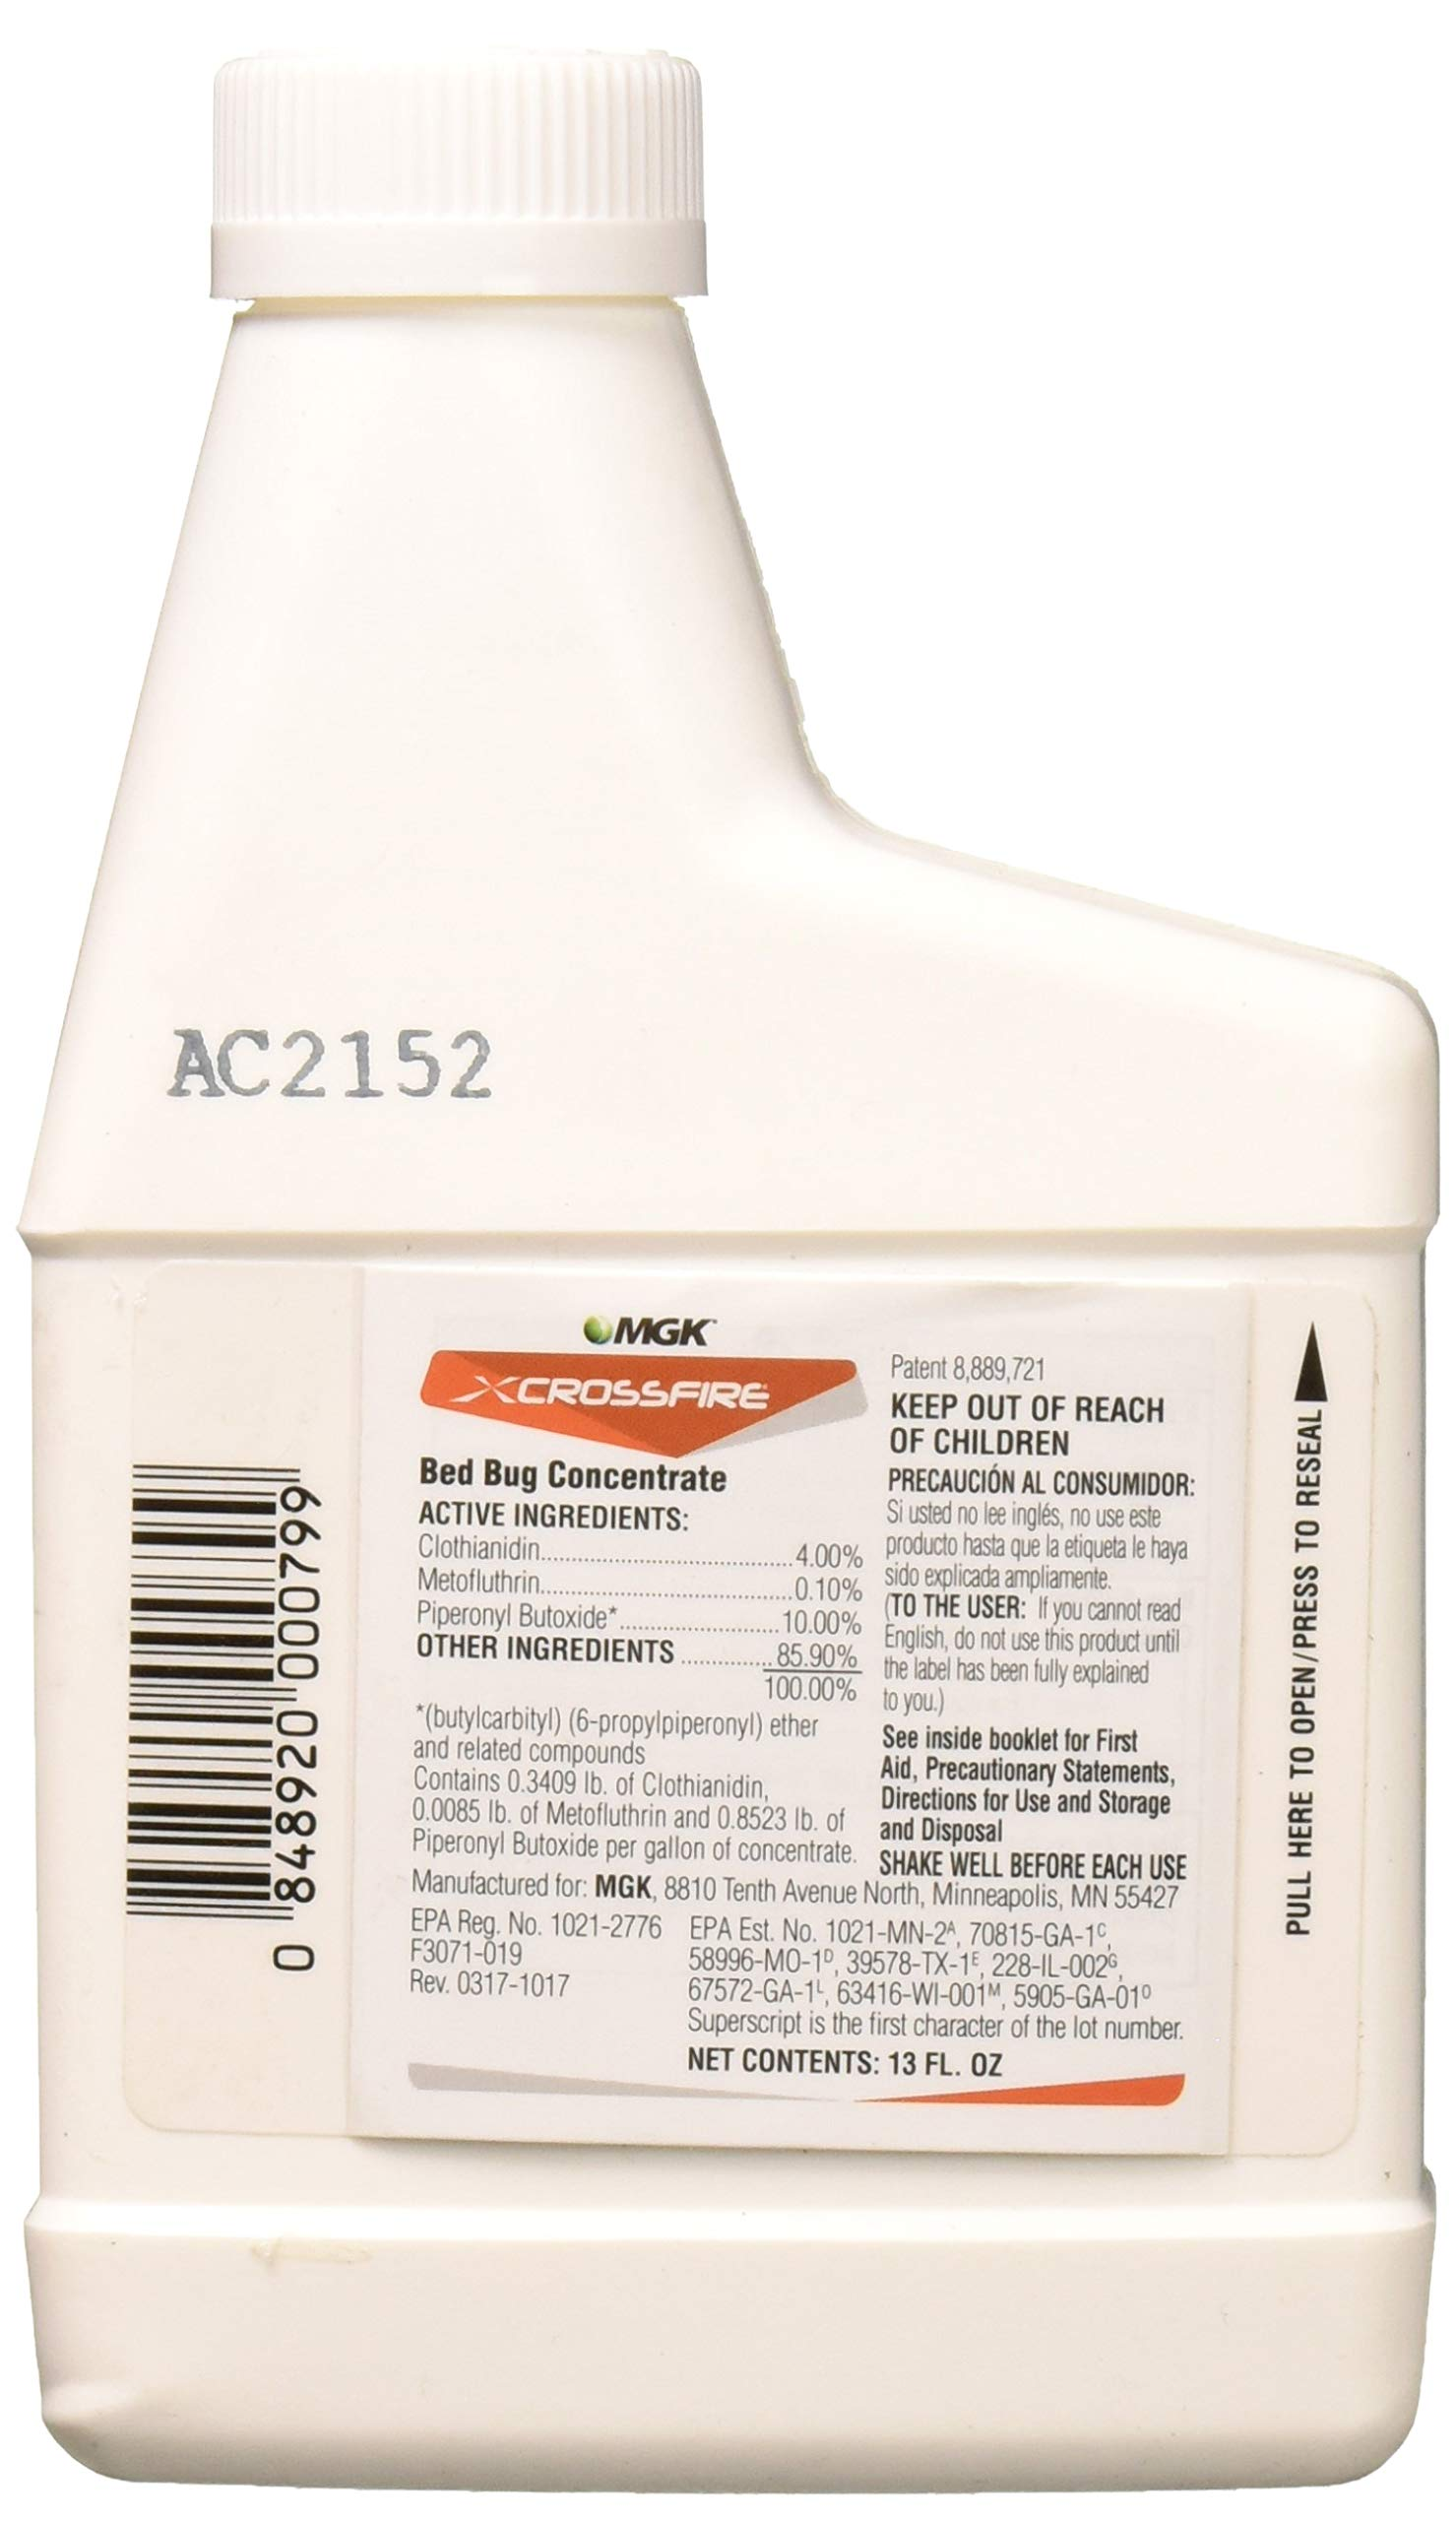 MGK 1852 Crossfire Concentrate 13oz Insecticide, Clear by MGK